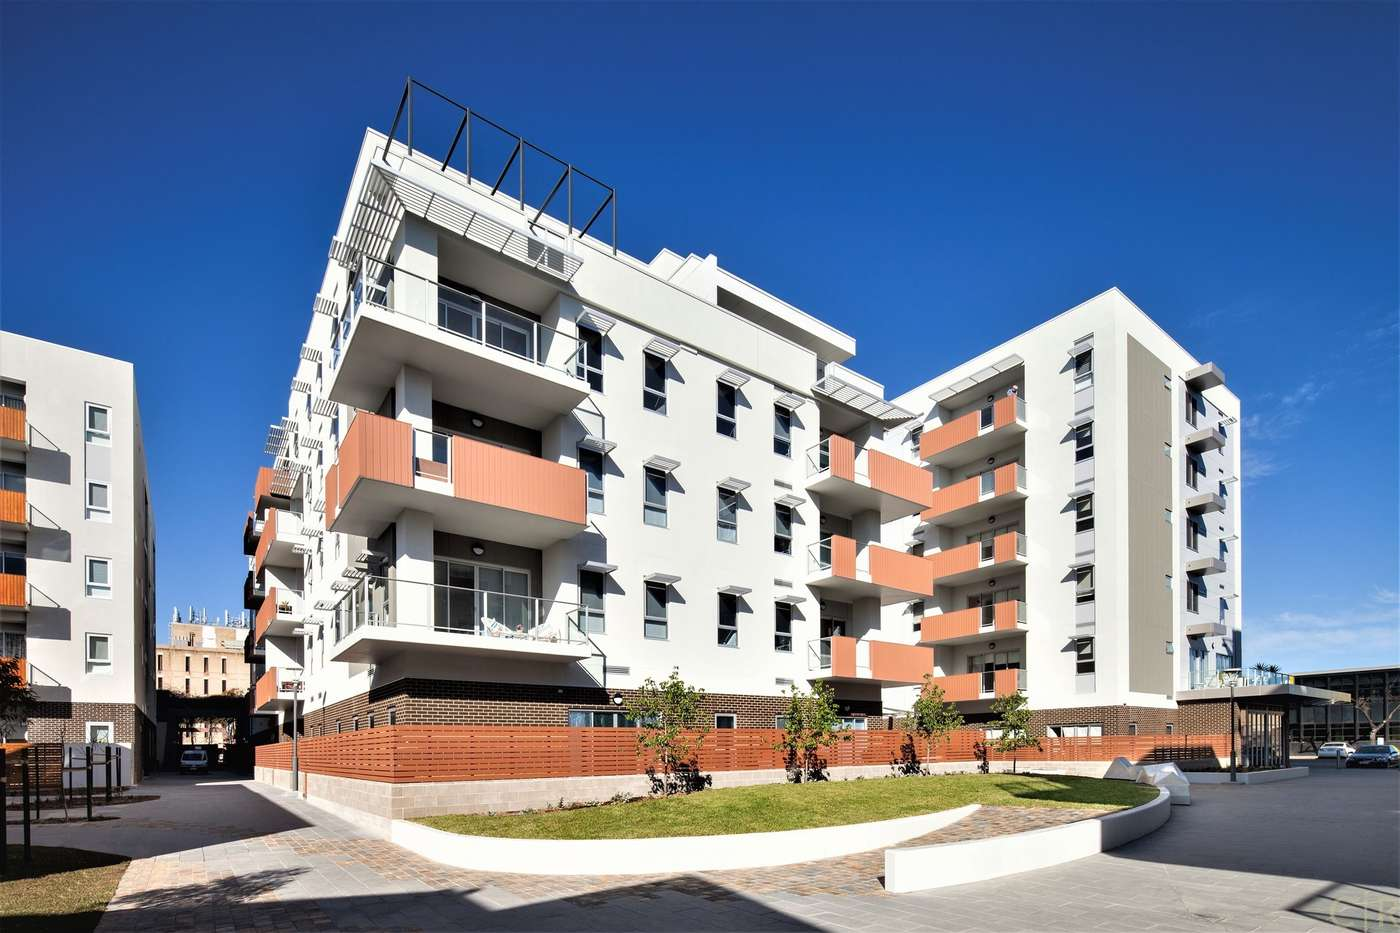 Main view of Homely apartment listing, 210/50 Sturt Street, Adelaide, SA 5000